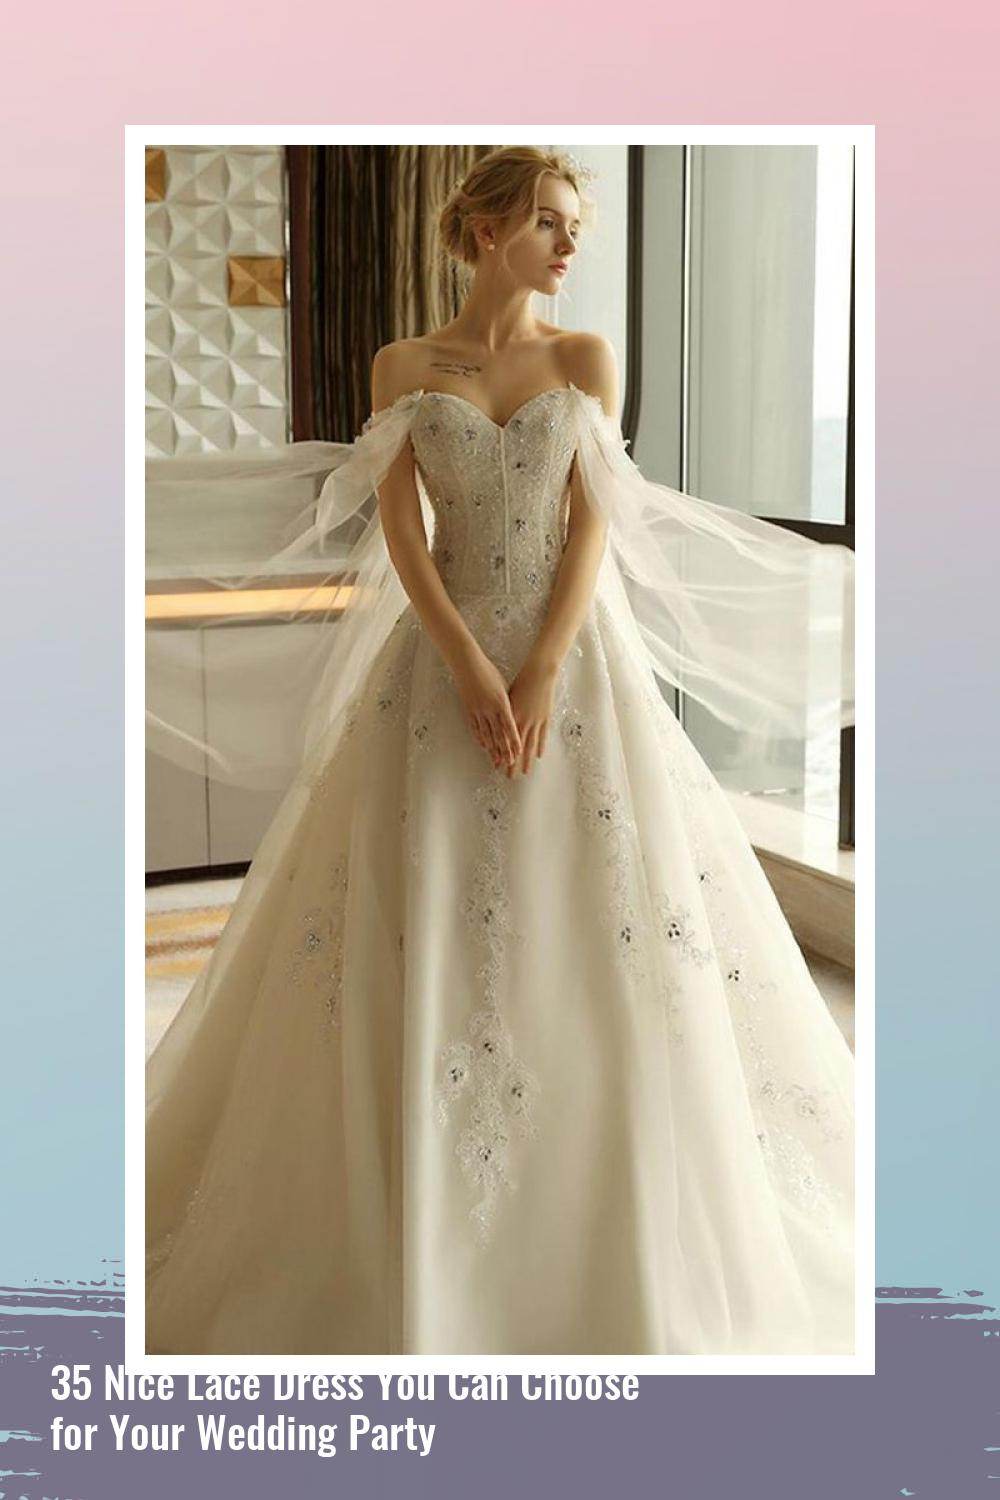 35 Nice Lace Dress You Can Choose for Your Wedding Party 8